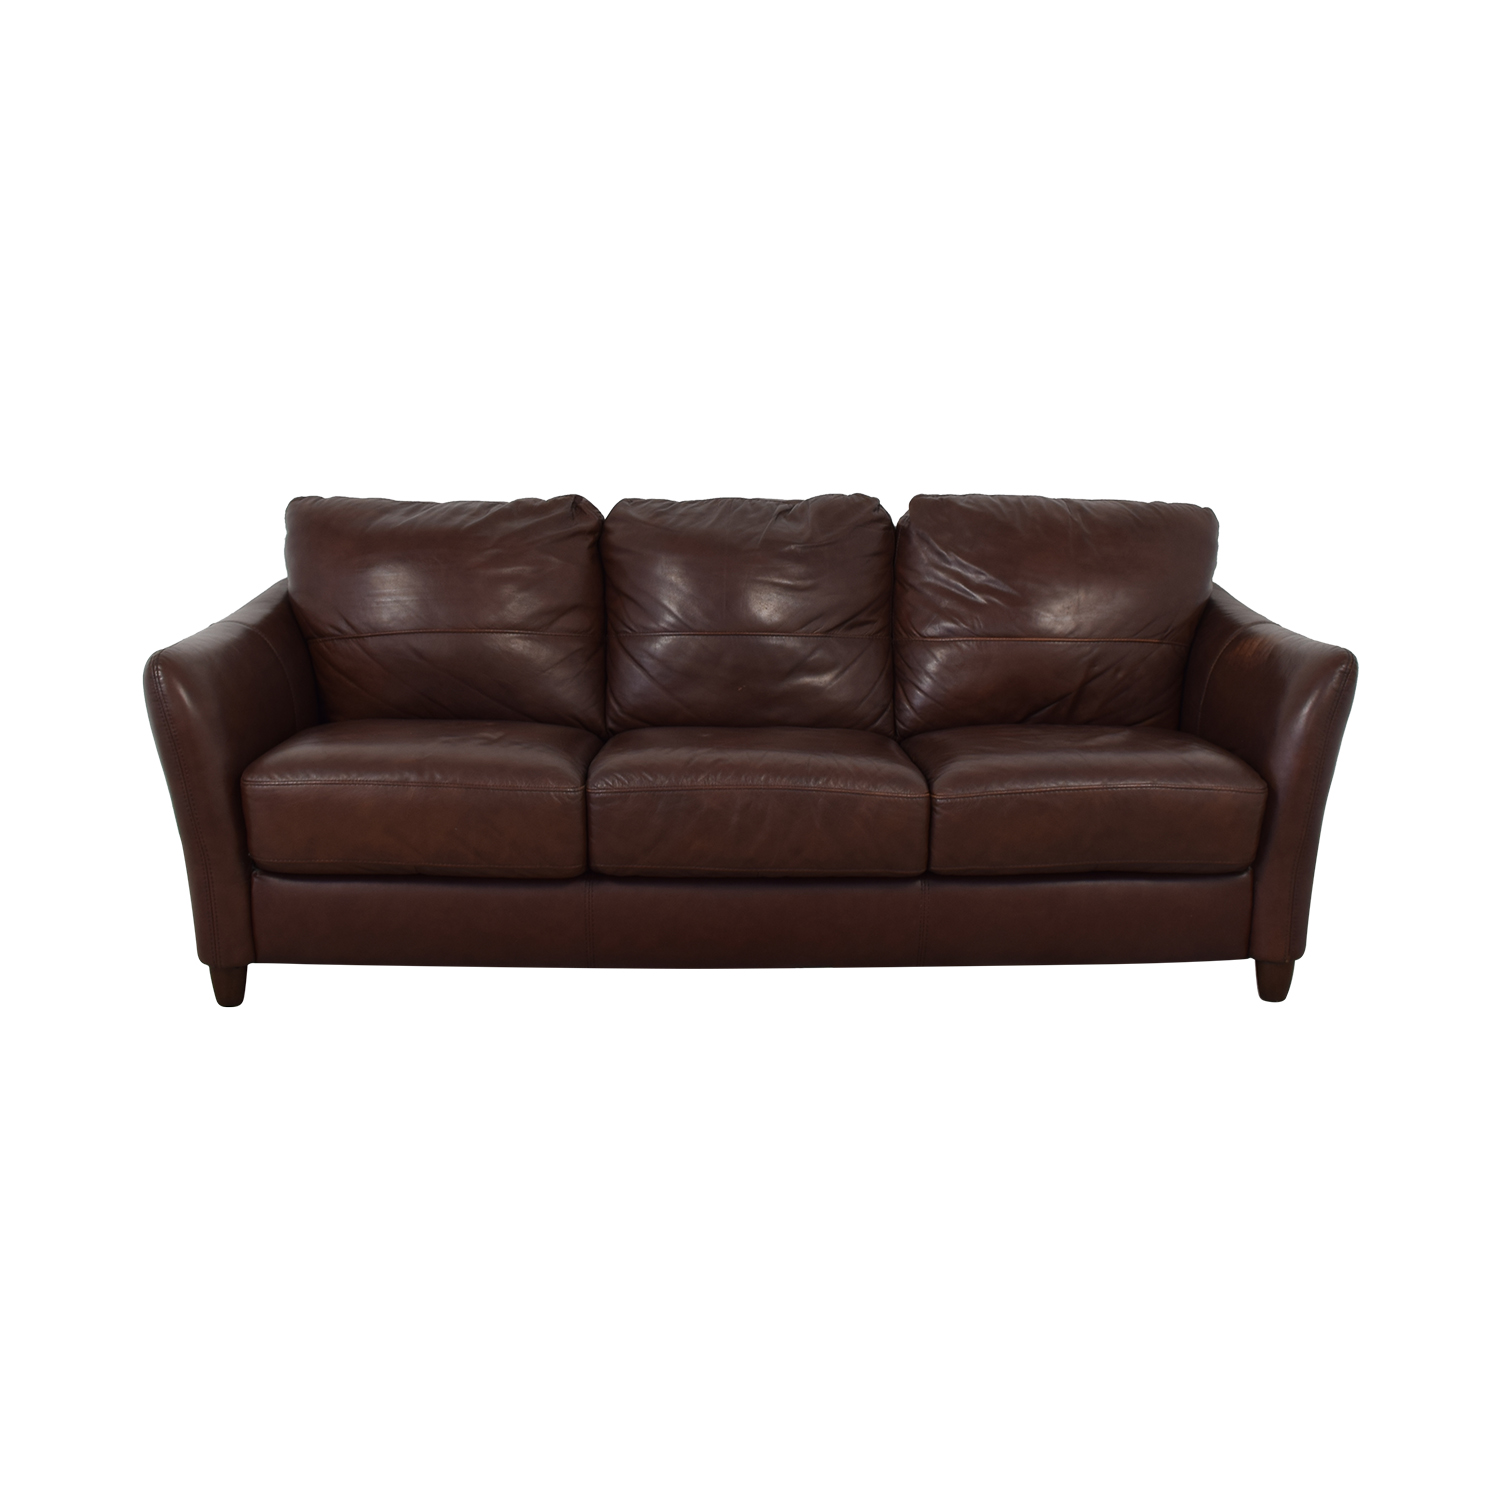 Raymour & Flanigan Raymour & Flanigan Leather Sofa for sale